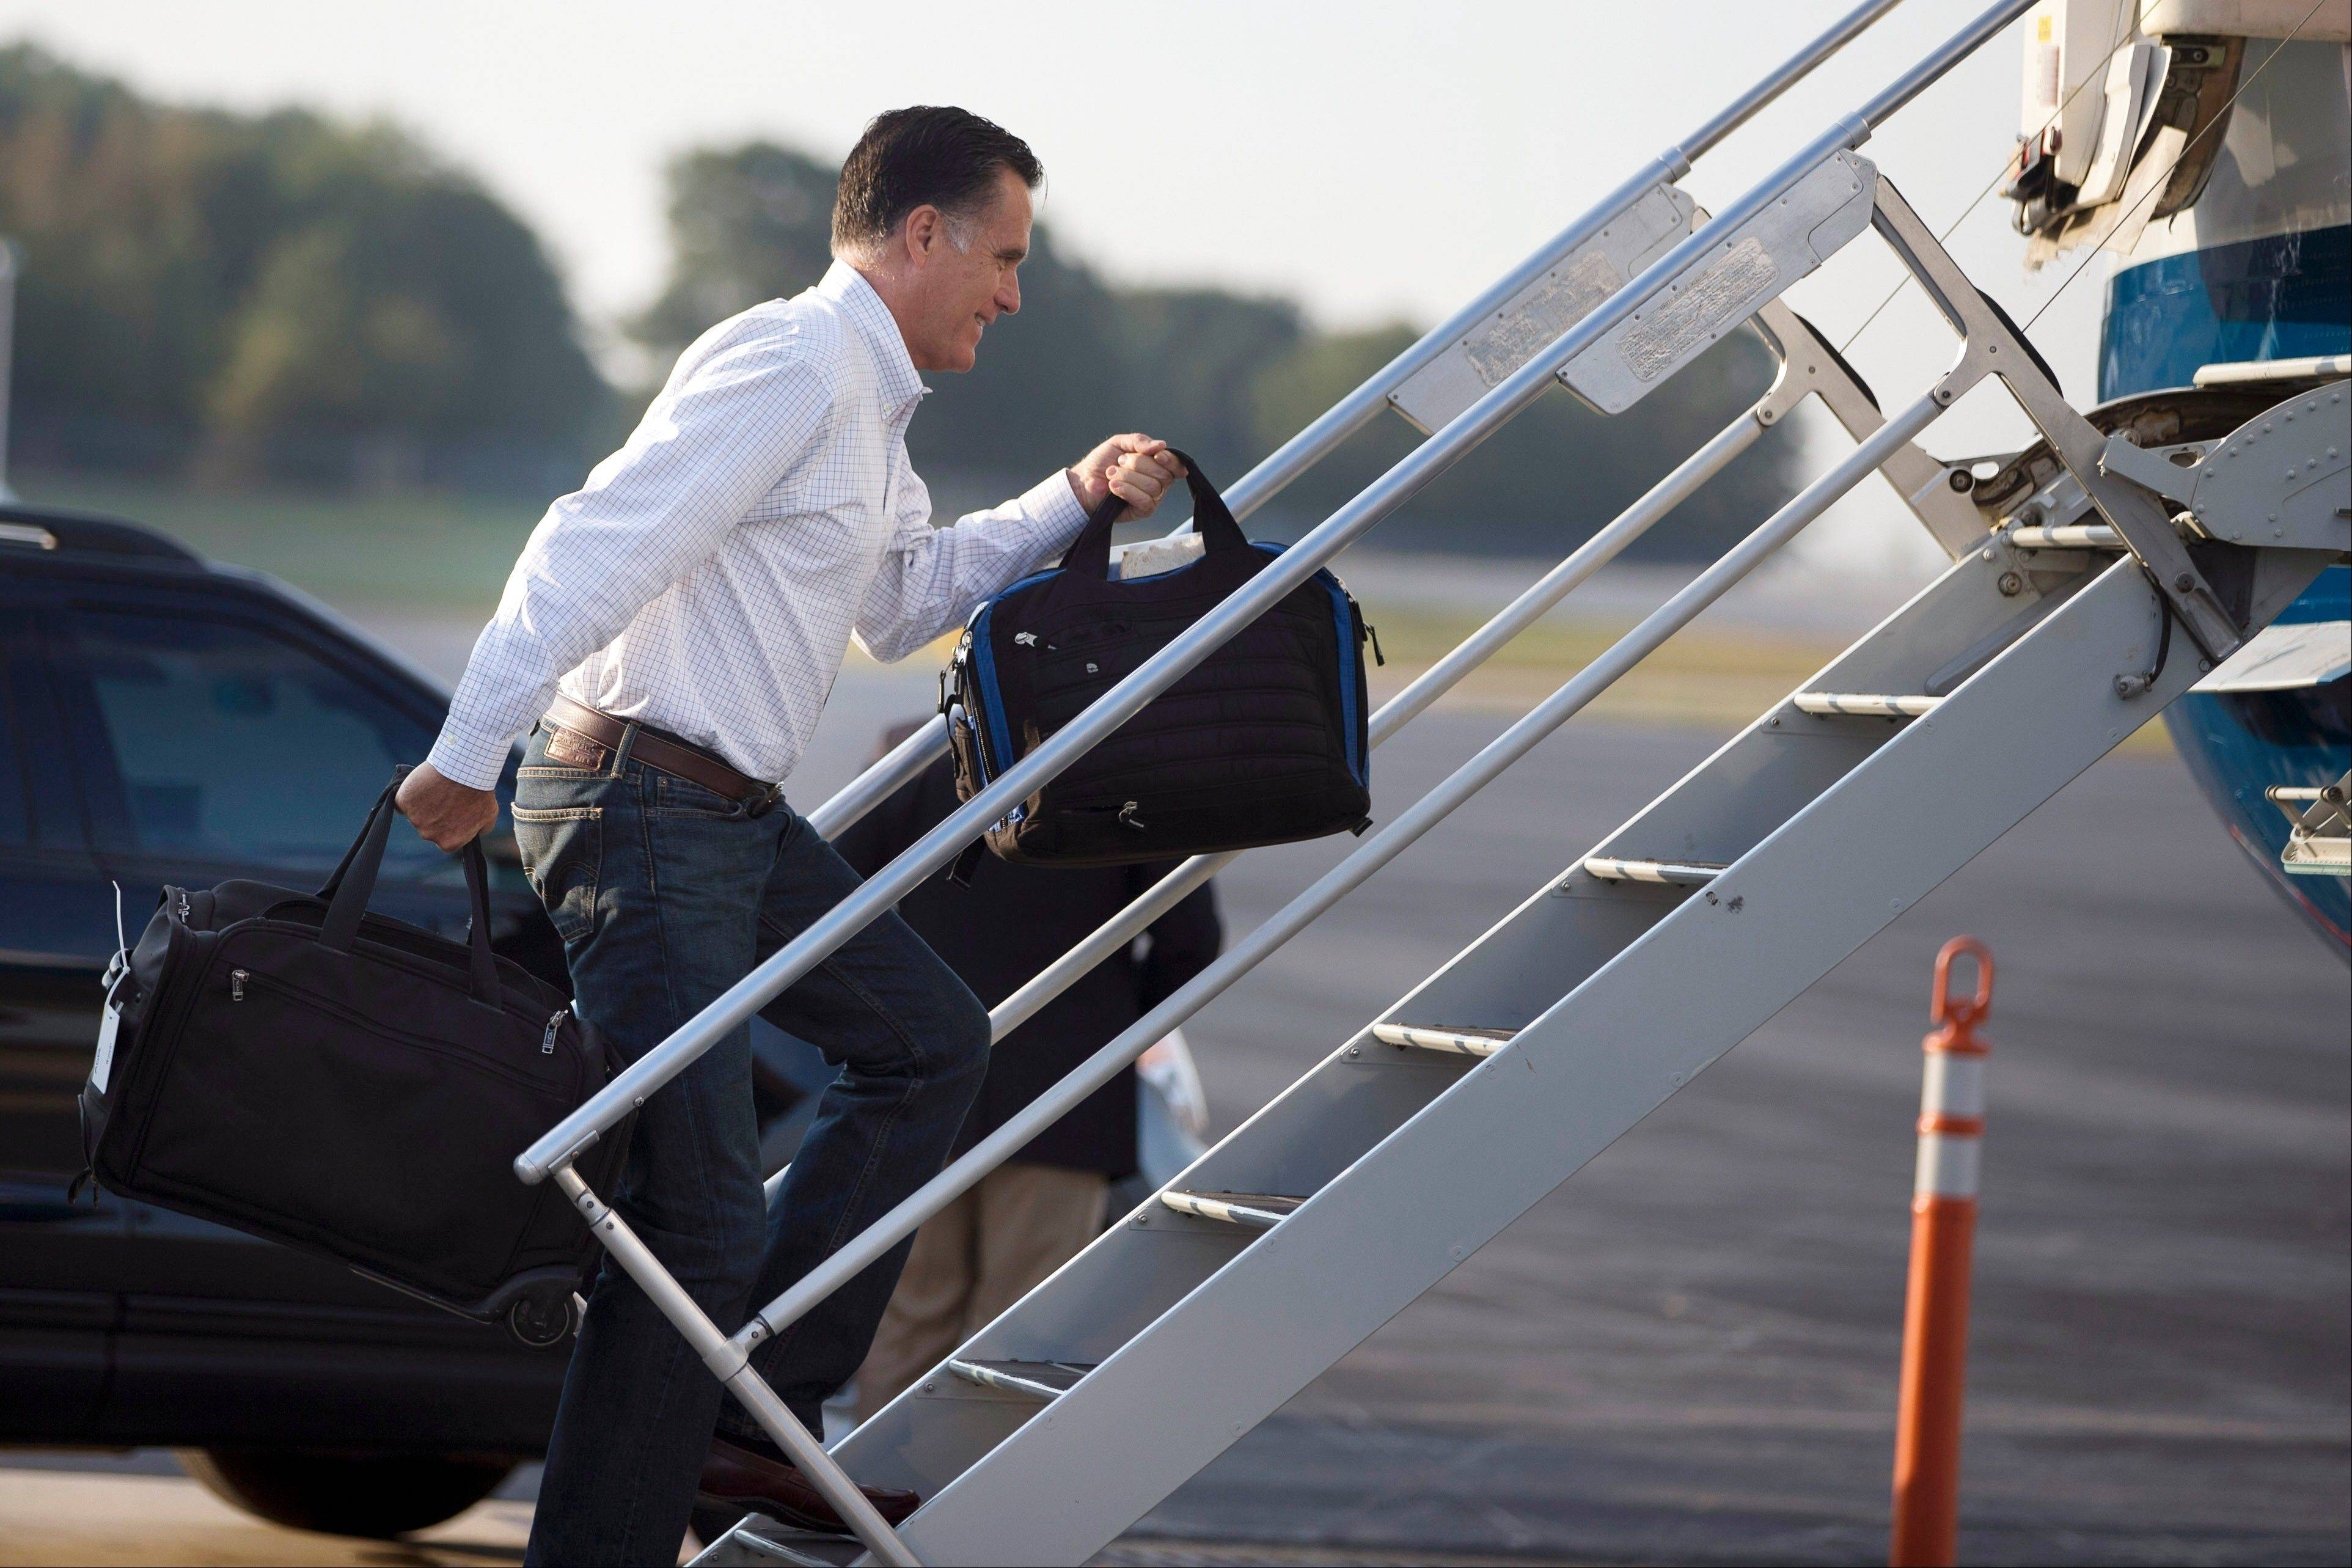 Republican presidential candidate, former Massachusetts Gov. Mitt Romney boards his campaign plane for an event in Iowa on Friday, Sept. 7, 2012 in Portsmouth, N.